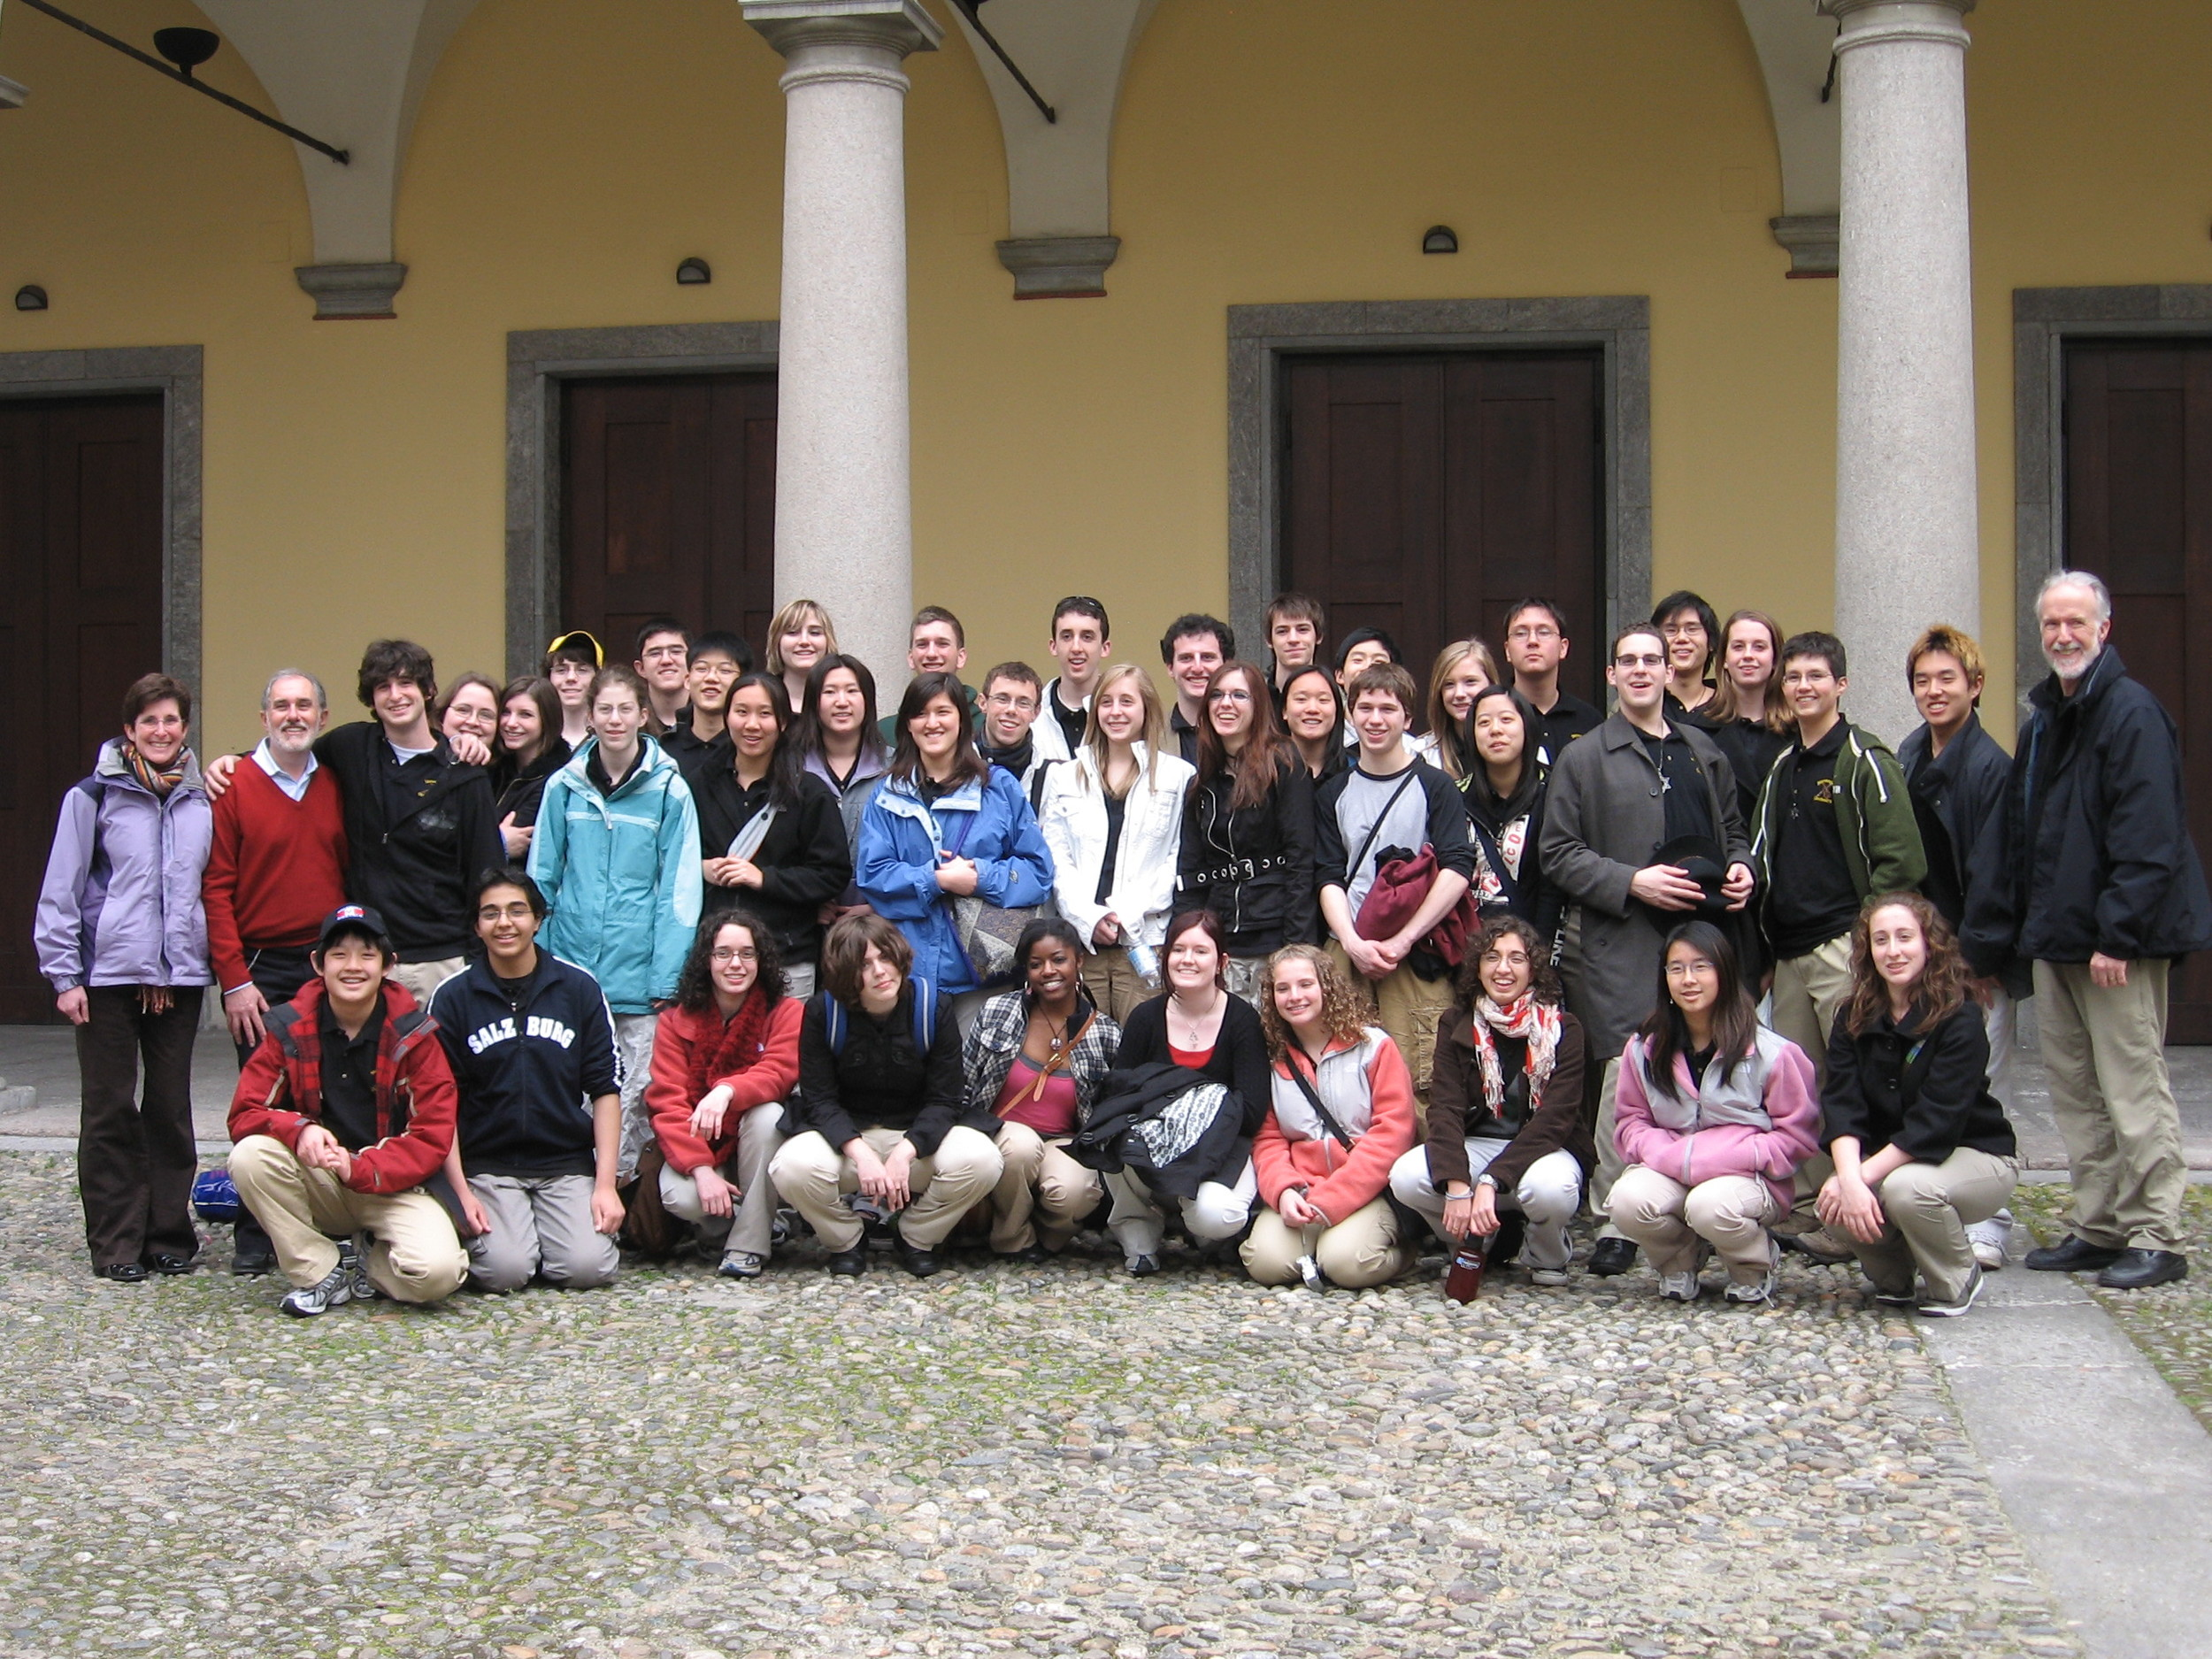 Clark in Italy with the Stevenson High School Tour Orchestra after a successful performance at the Milan Conservatory of Music, 2008